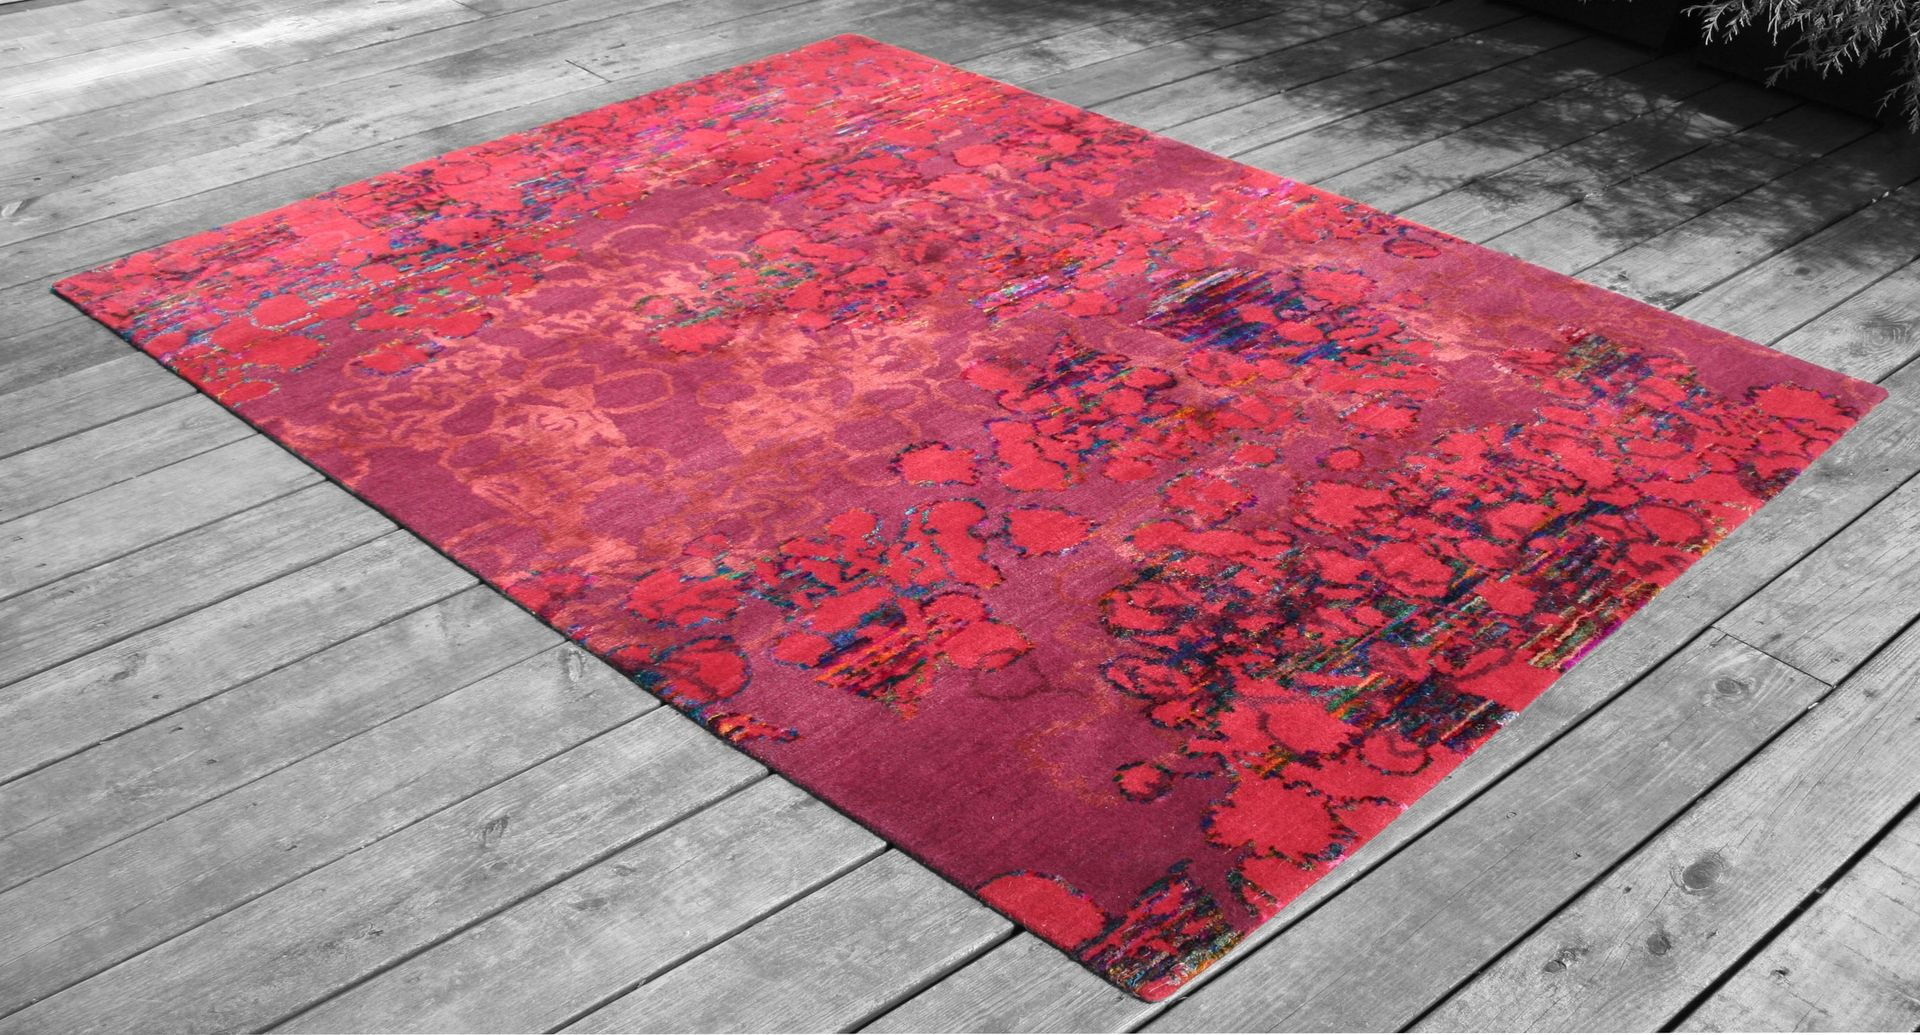 Hand Crafted Recycled Sari Silk Rug Series By Bennett Bean